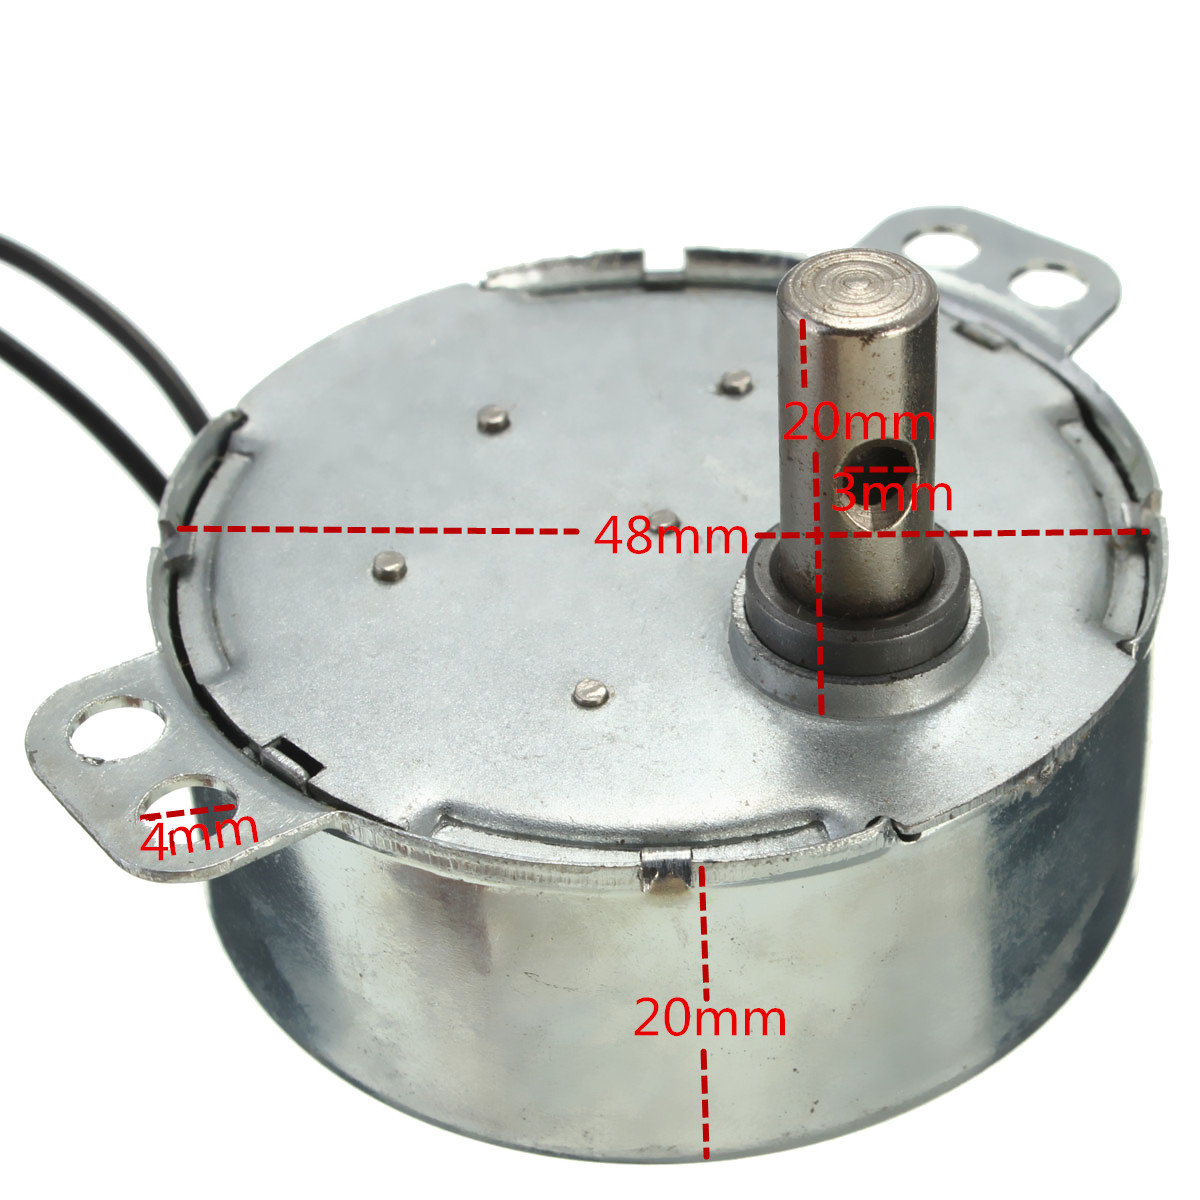 2 5 3rpm Turntable Synchronous Motor 220 240v Ac 4w For Microwave 731943024661 Ebay